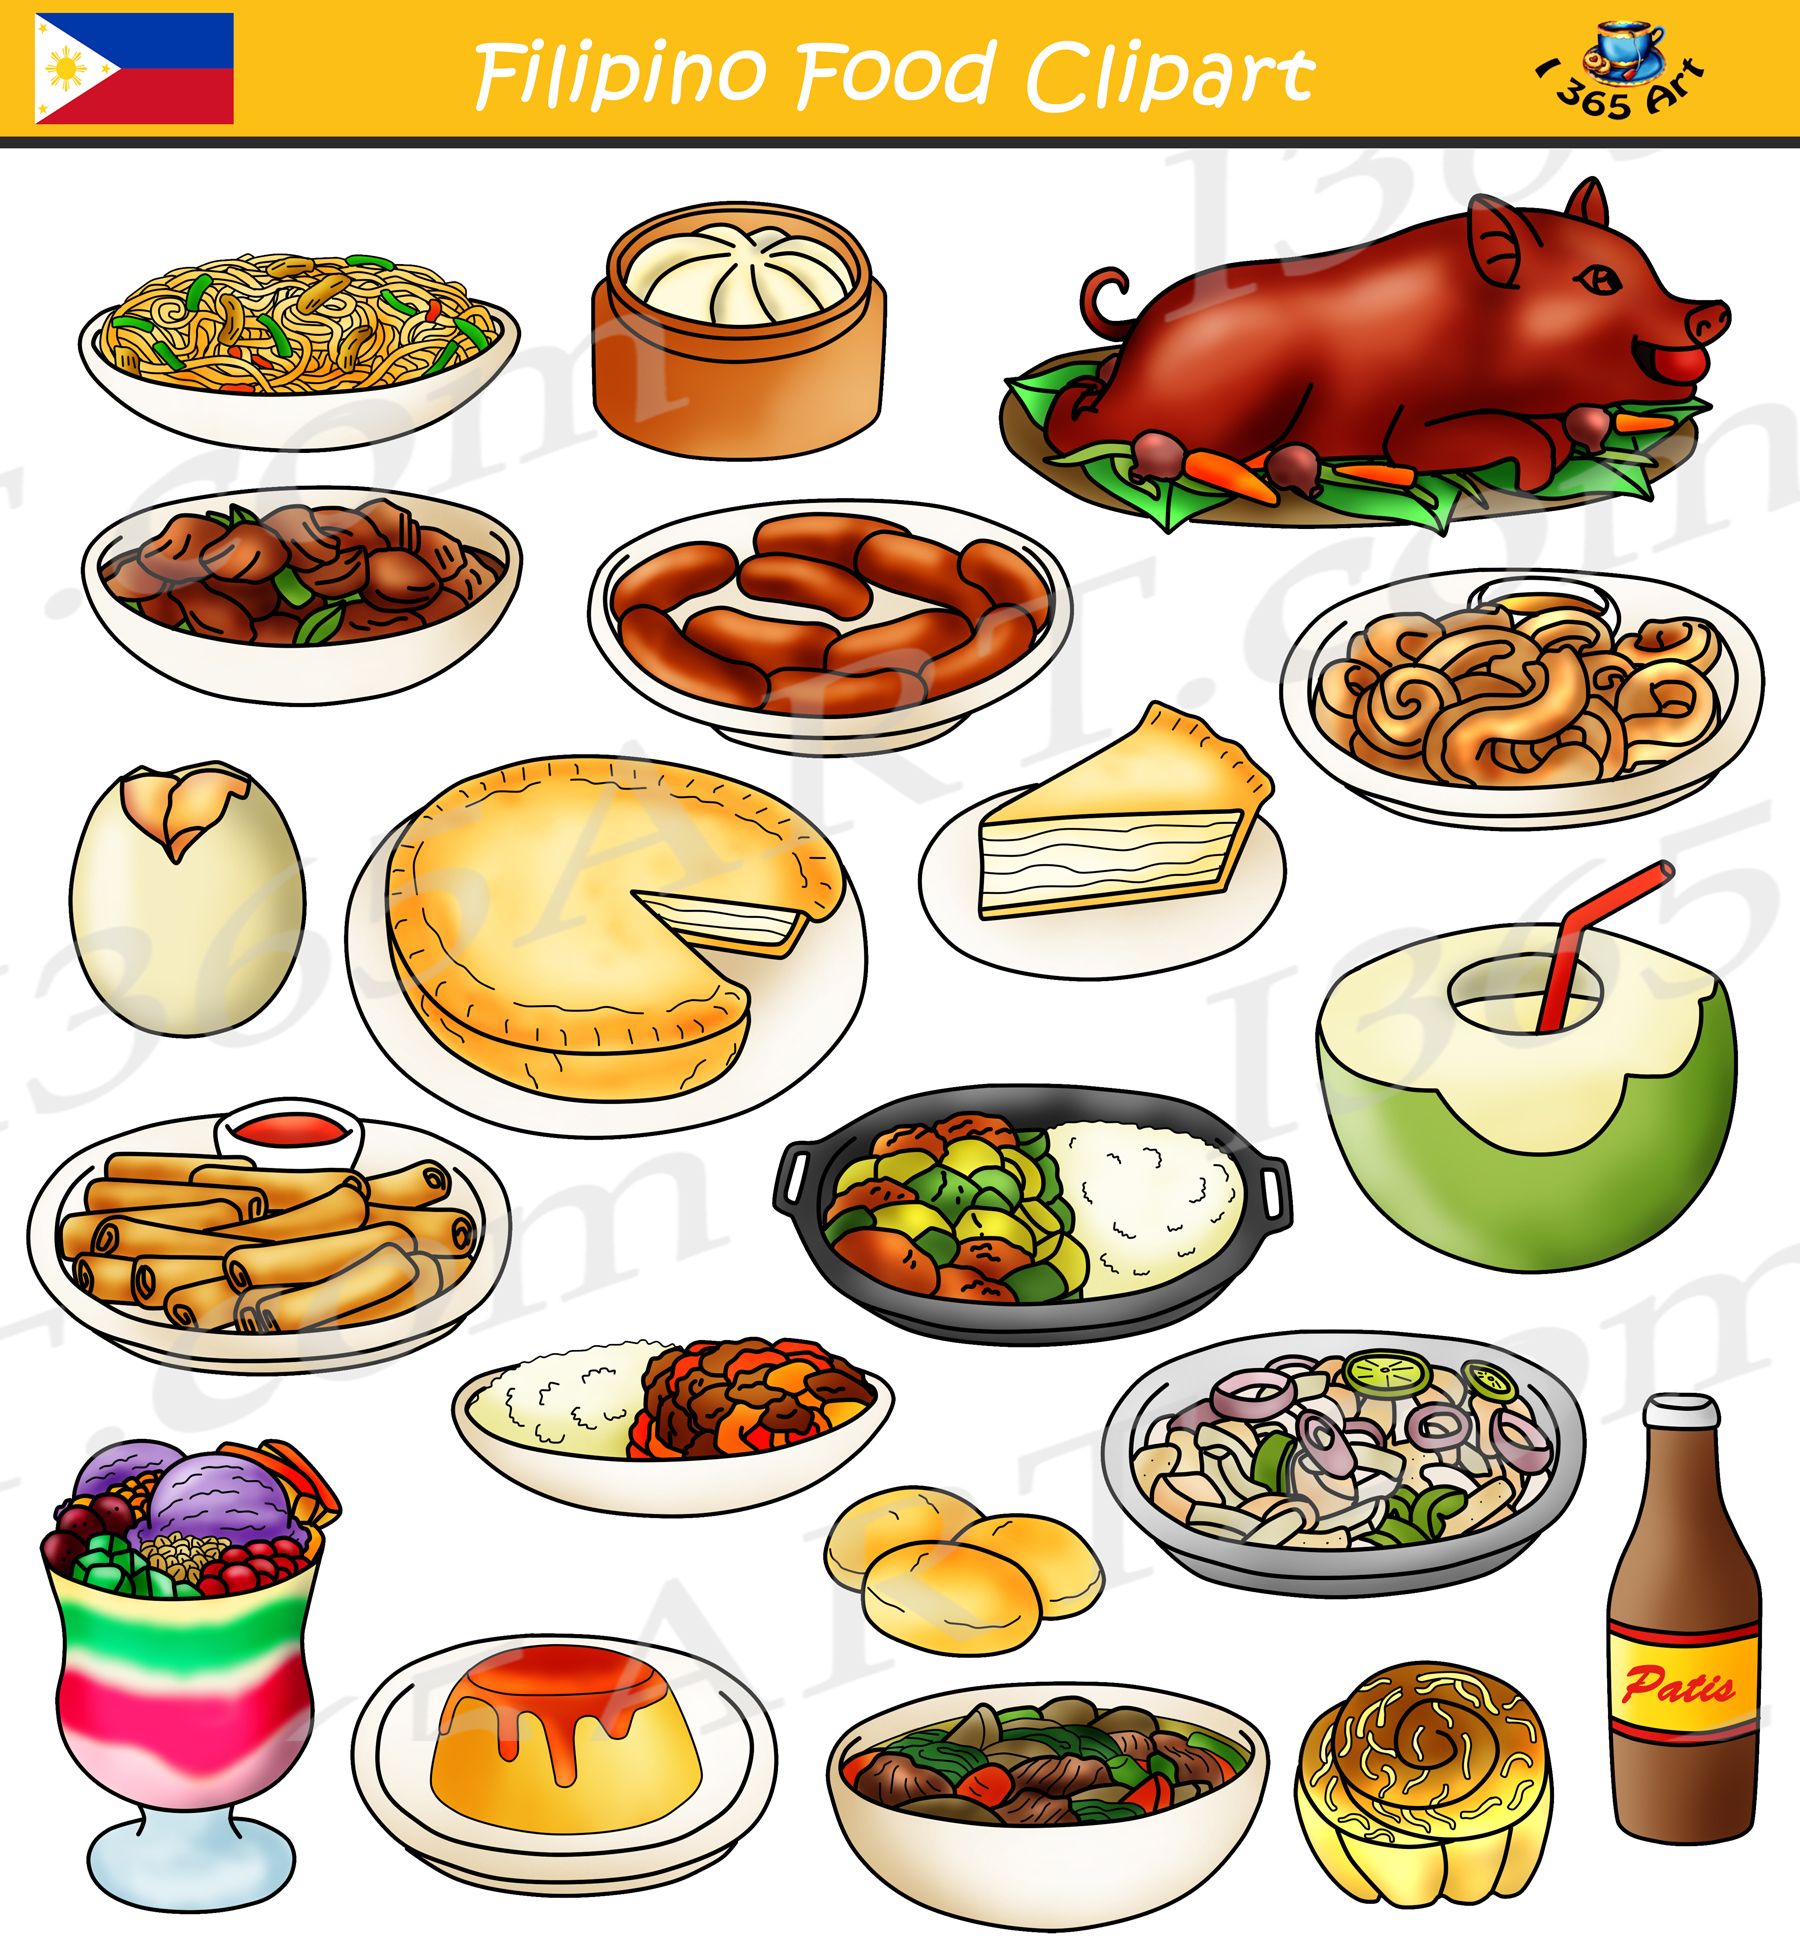 Clipart images food jpg freeuse library Filipino Food Clipart Bundle - Food From the Philippines jpg freeuse library